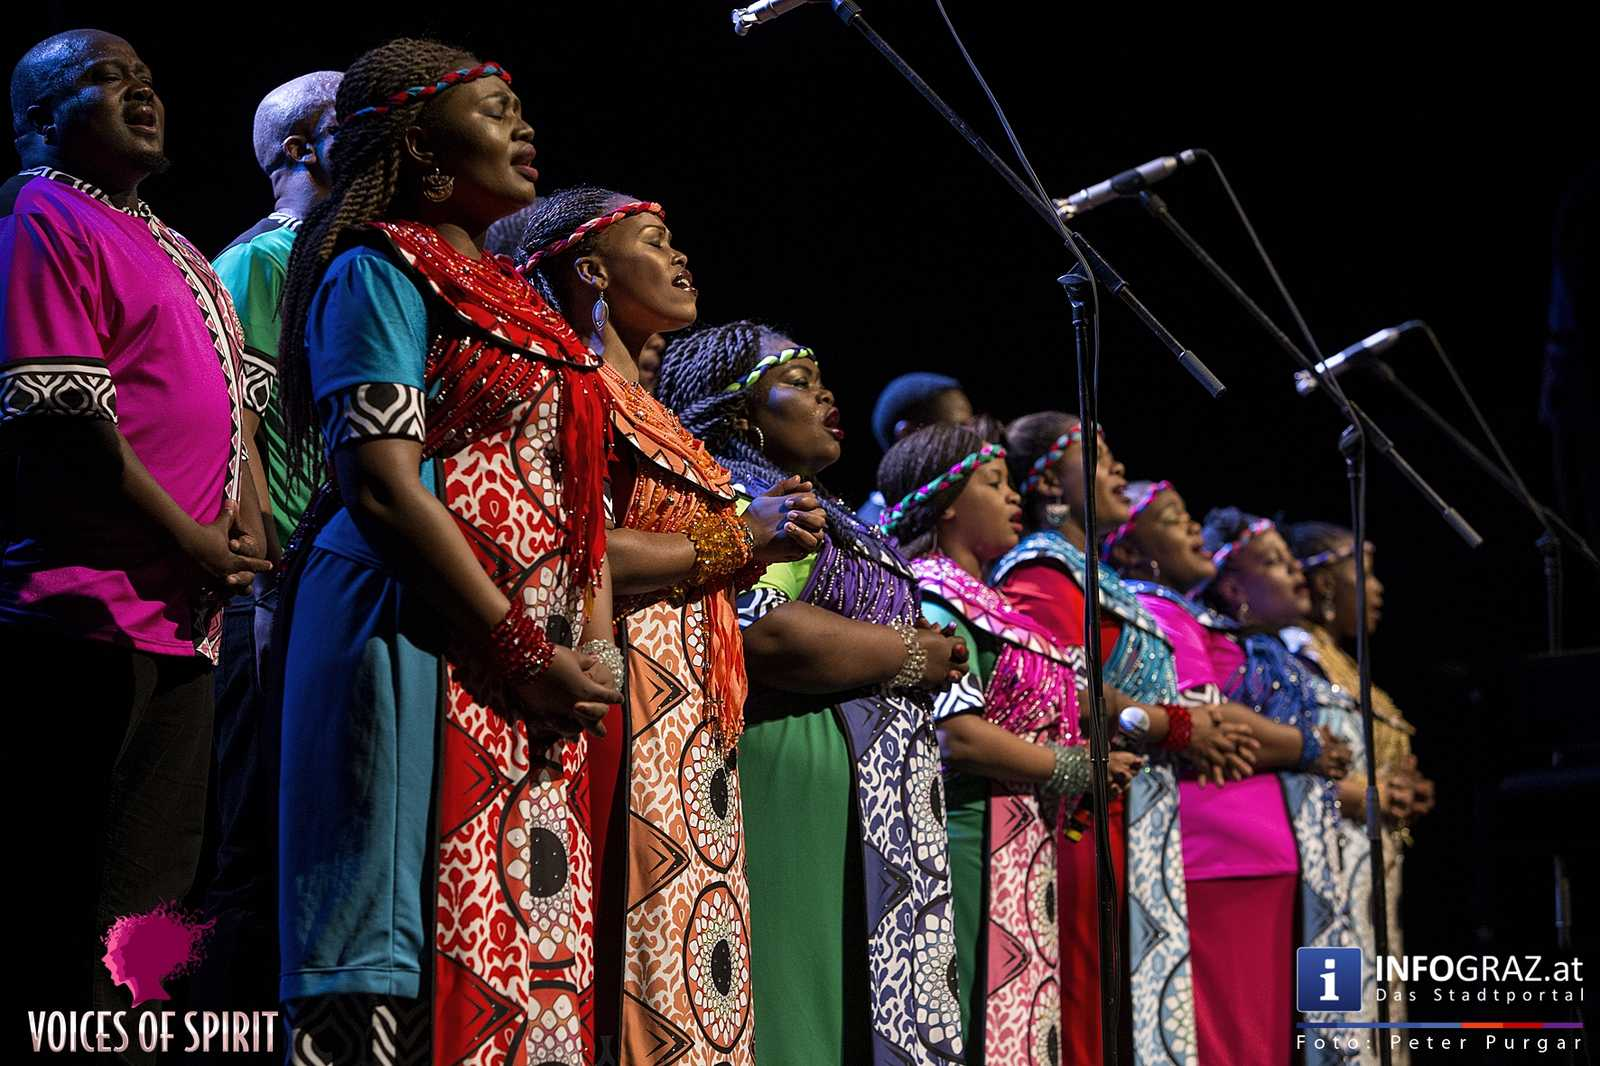 soweto gospel choir internationales chorfestival statdthalle graz voices of spirit eroeffnung festivals 2016 104